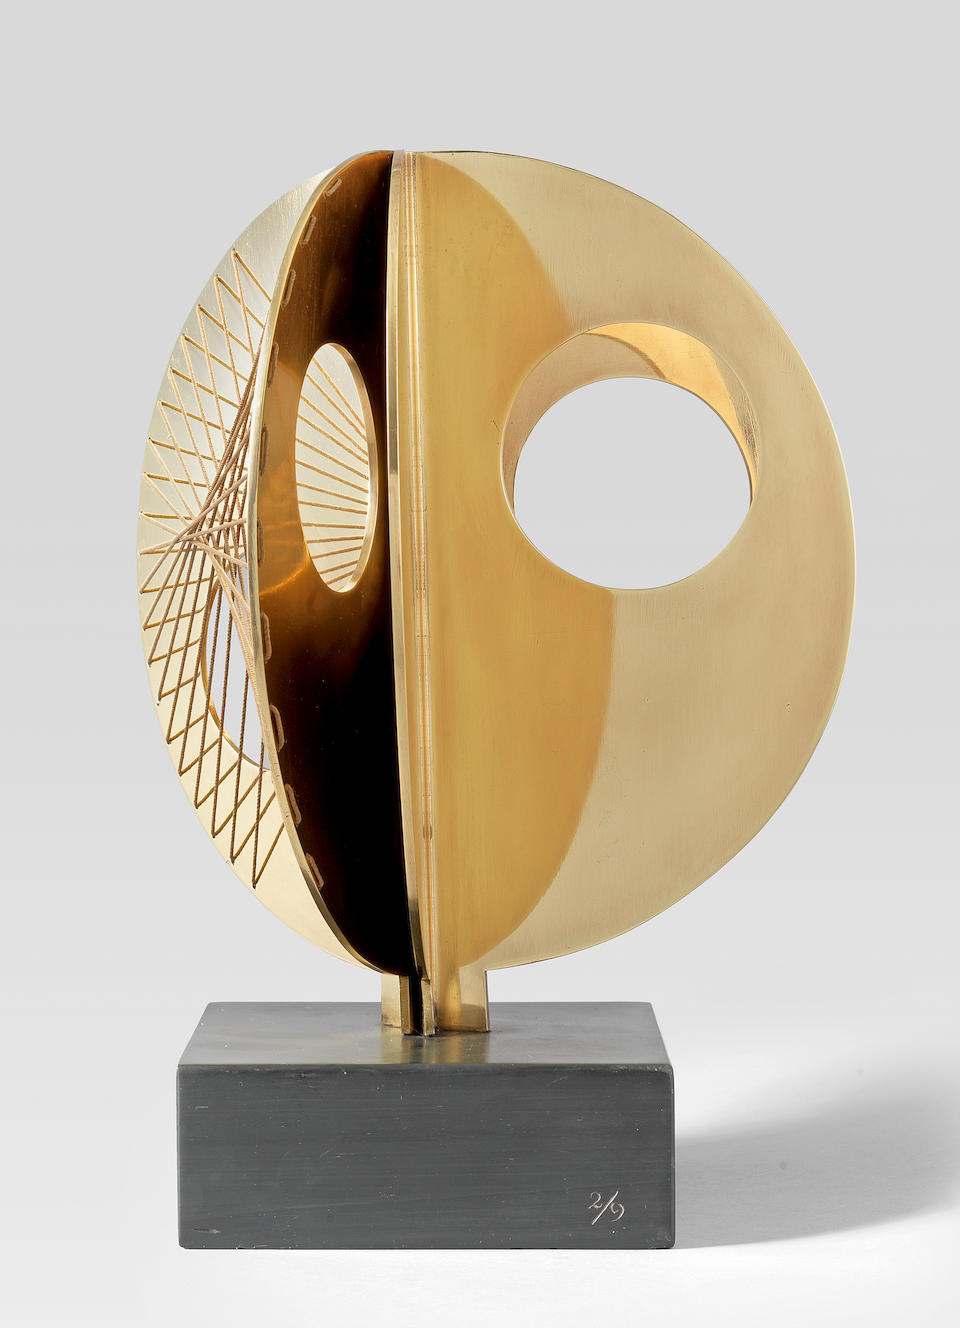 Dame Barbara Hepworth (British, 1903-1975) Mincarlo 34.2 cm. (13 1/2 in.) high (including the base) Conceived and cast in 1971 (This work is recorded as BH 526)